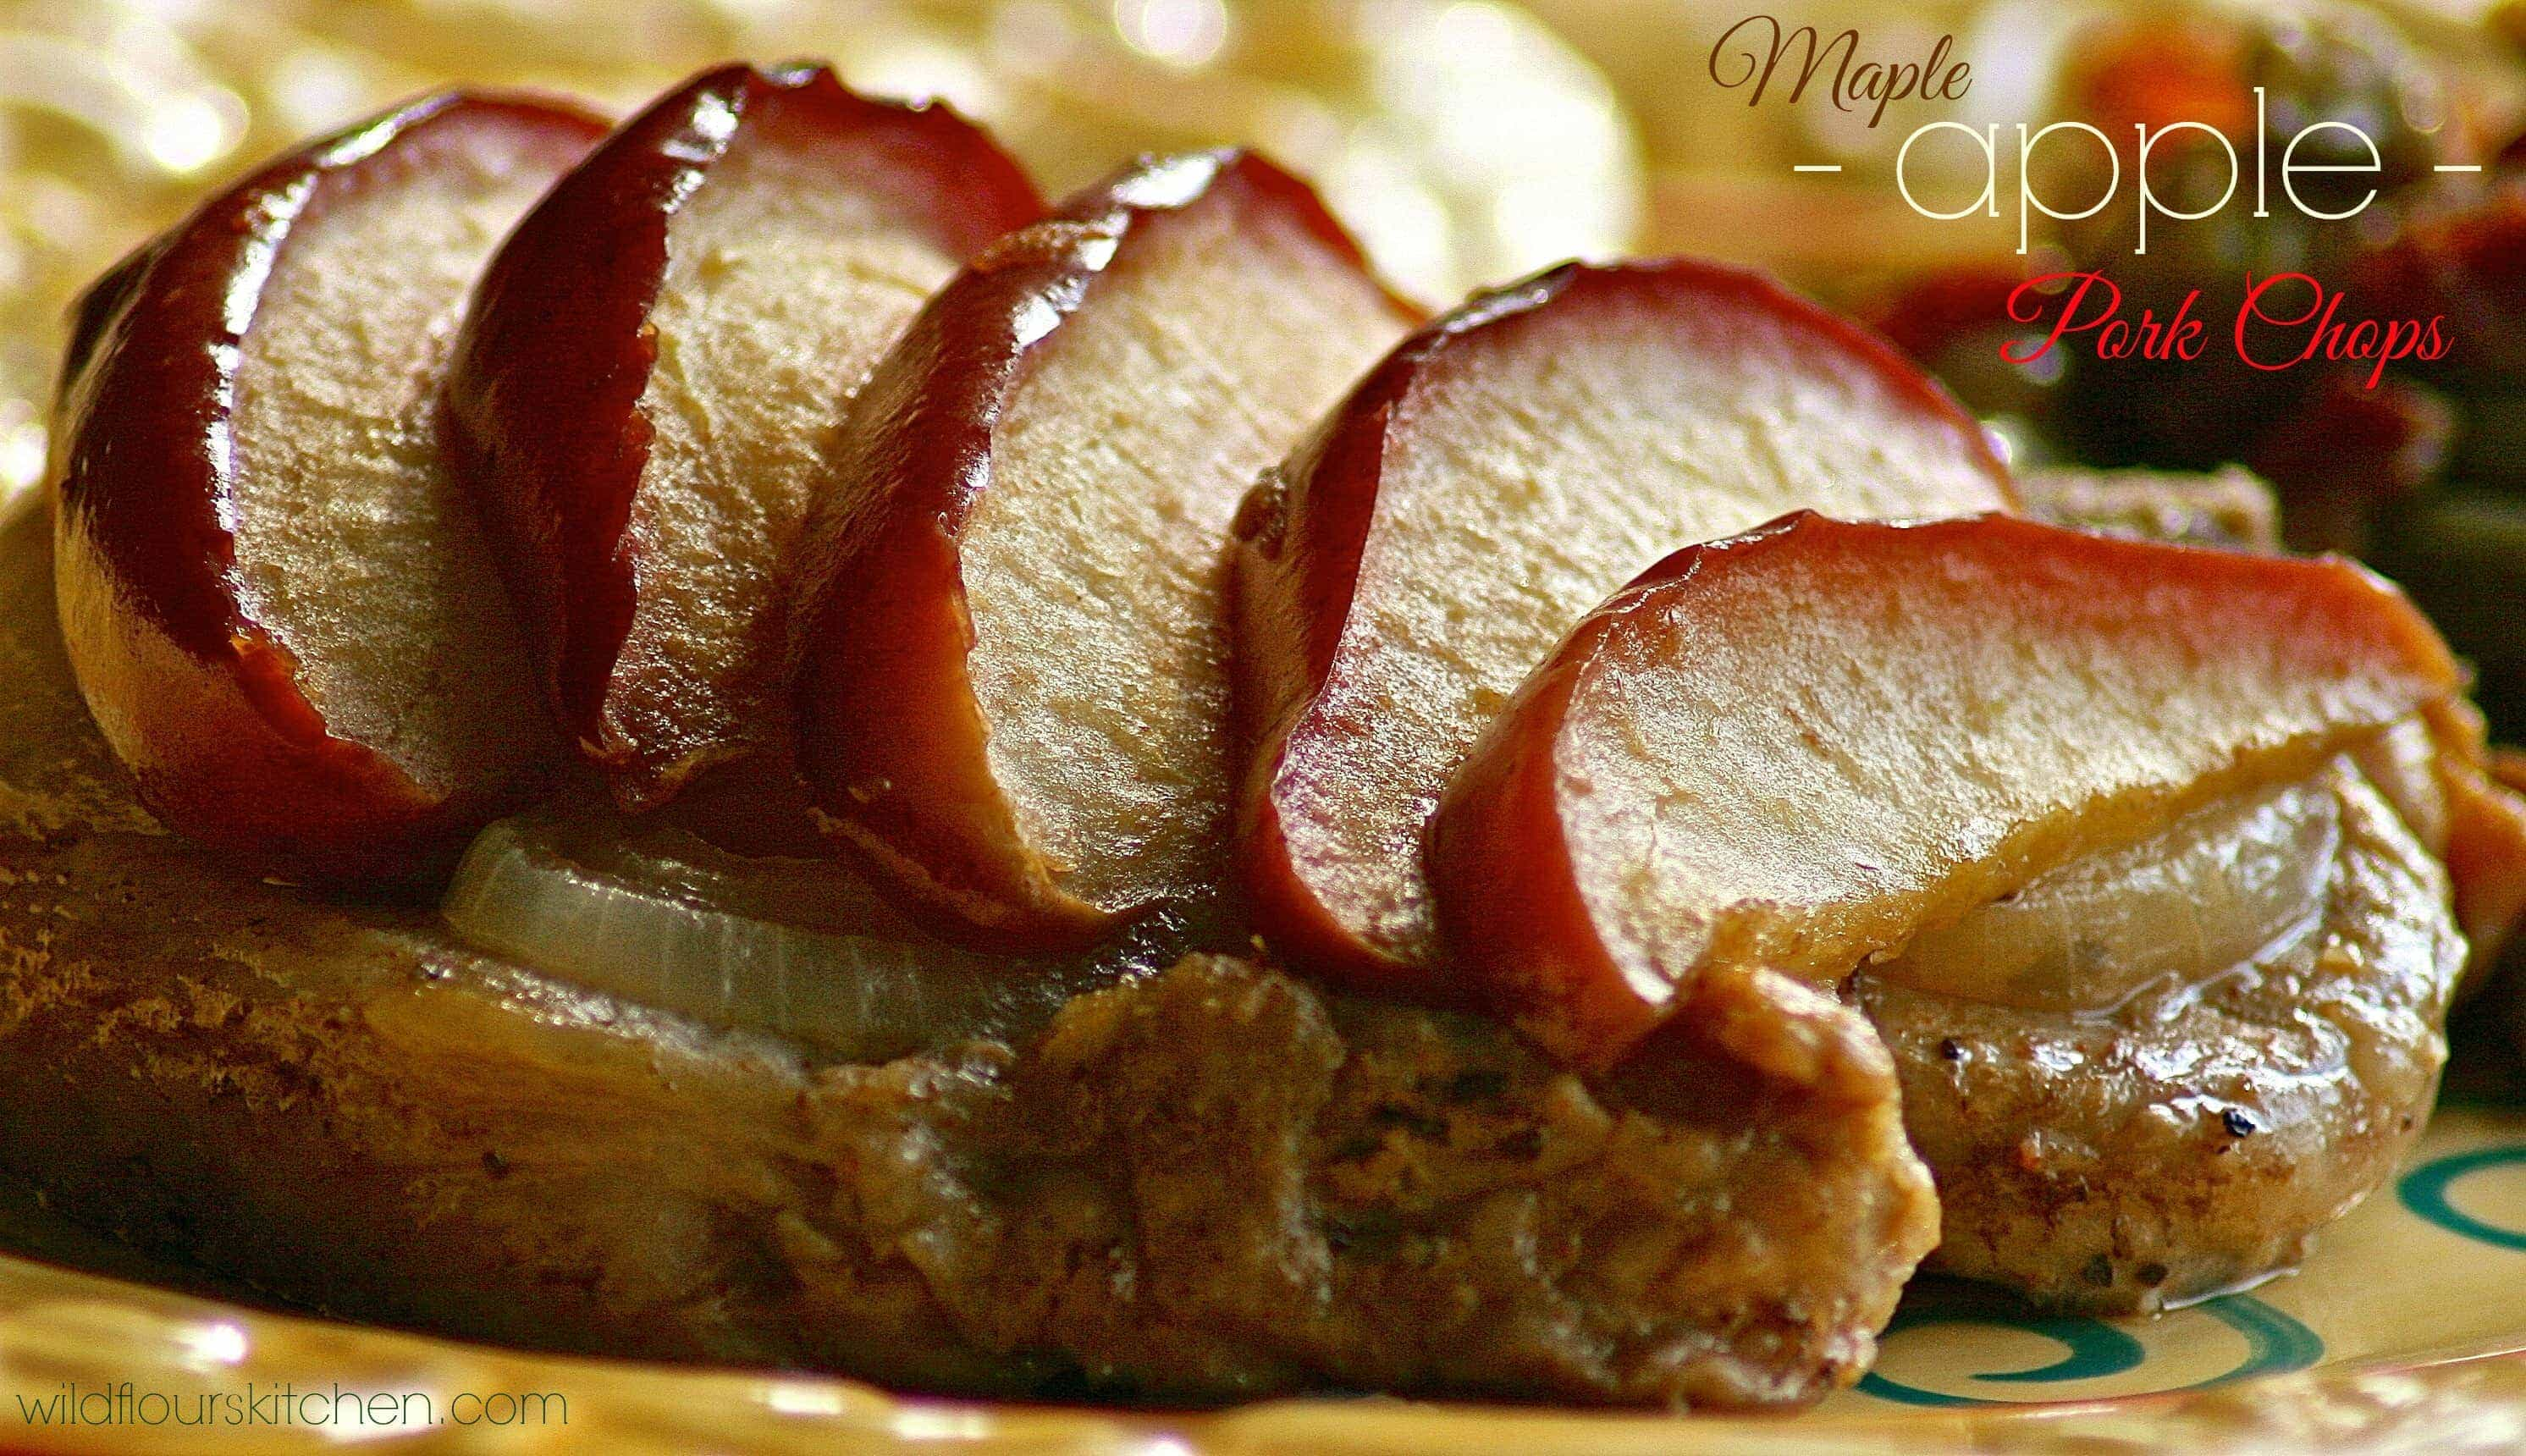 Maple Apple Pork Chops - Wildflour's Cottage Kitchen